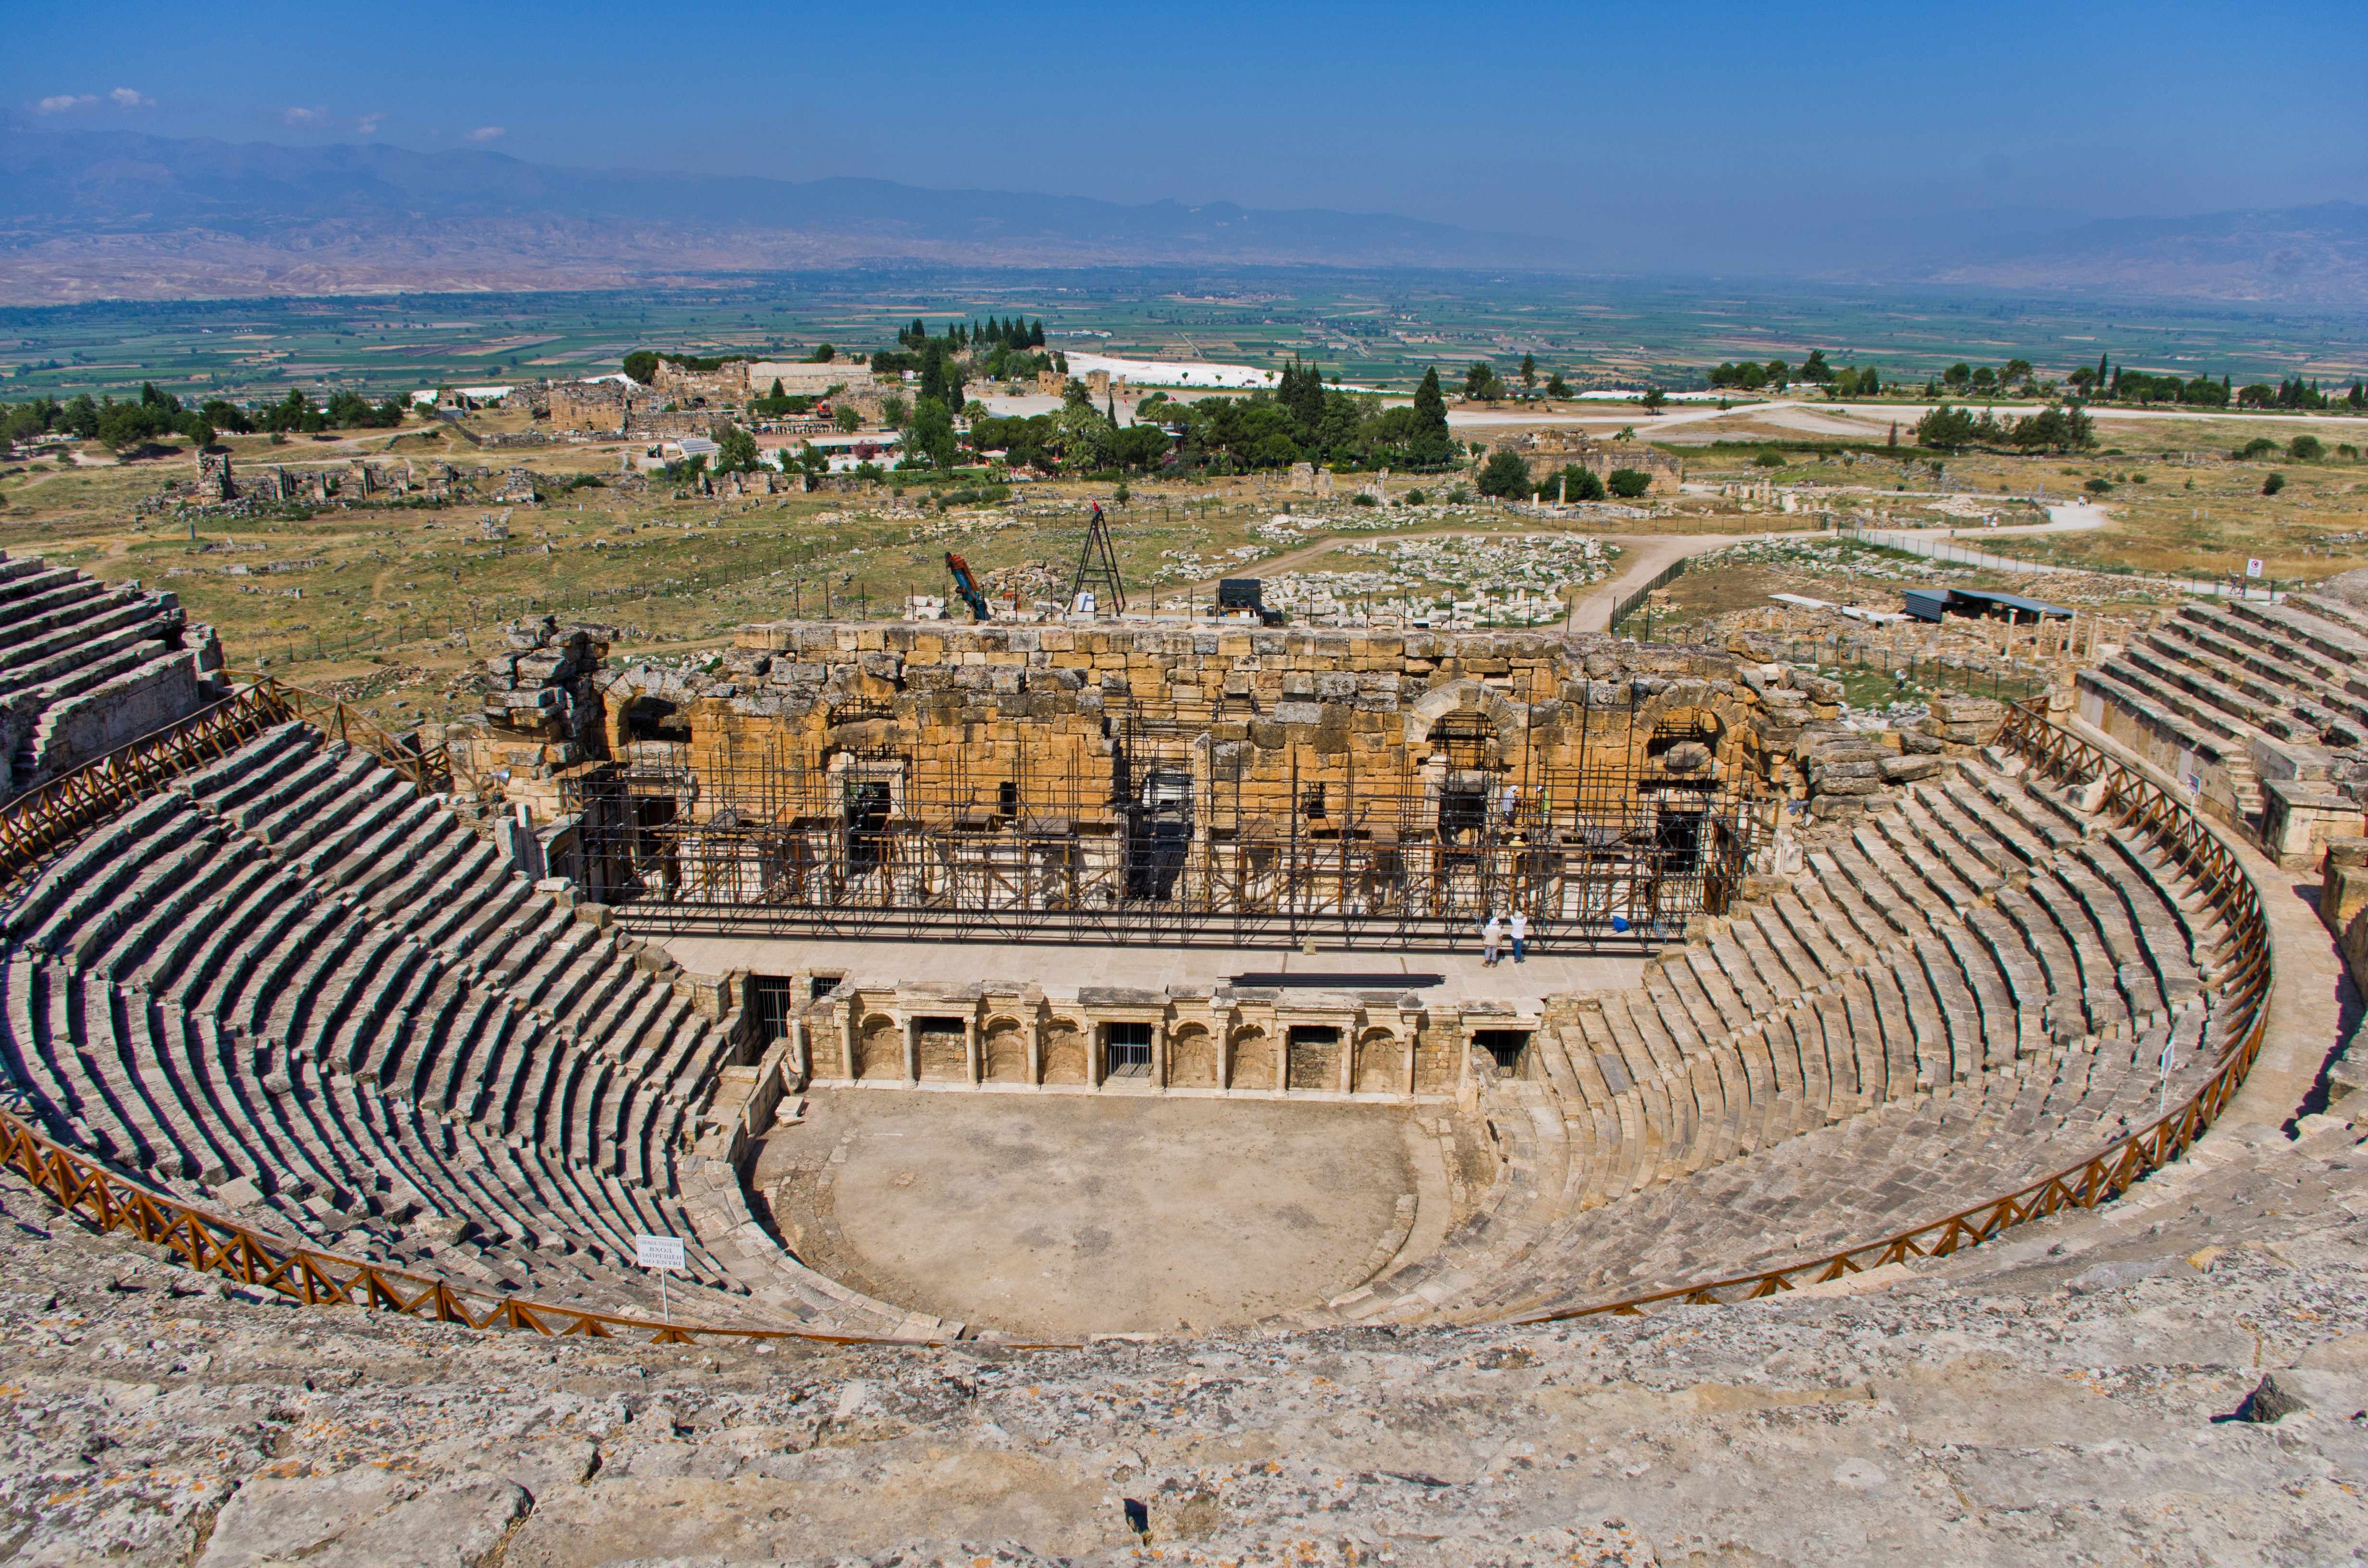 File:Theatre in Hierapolis.jpg